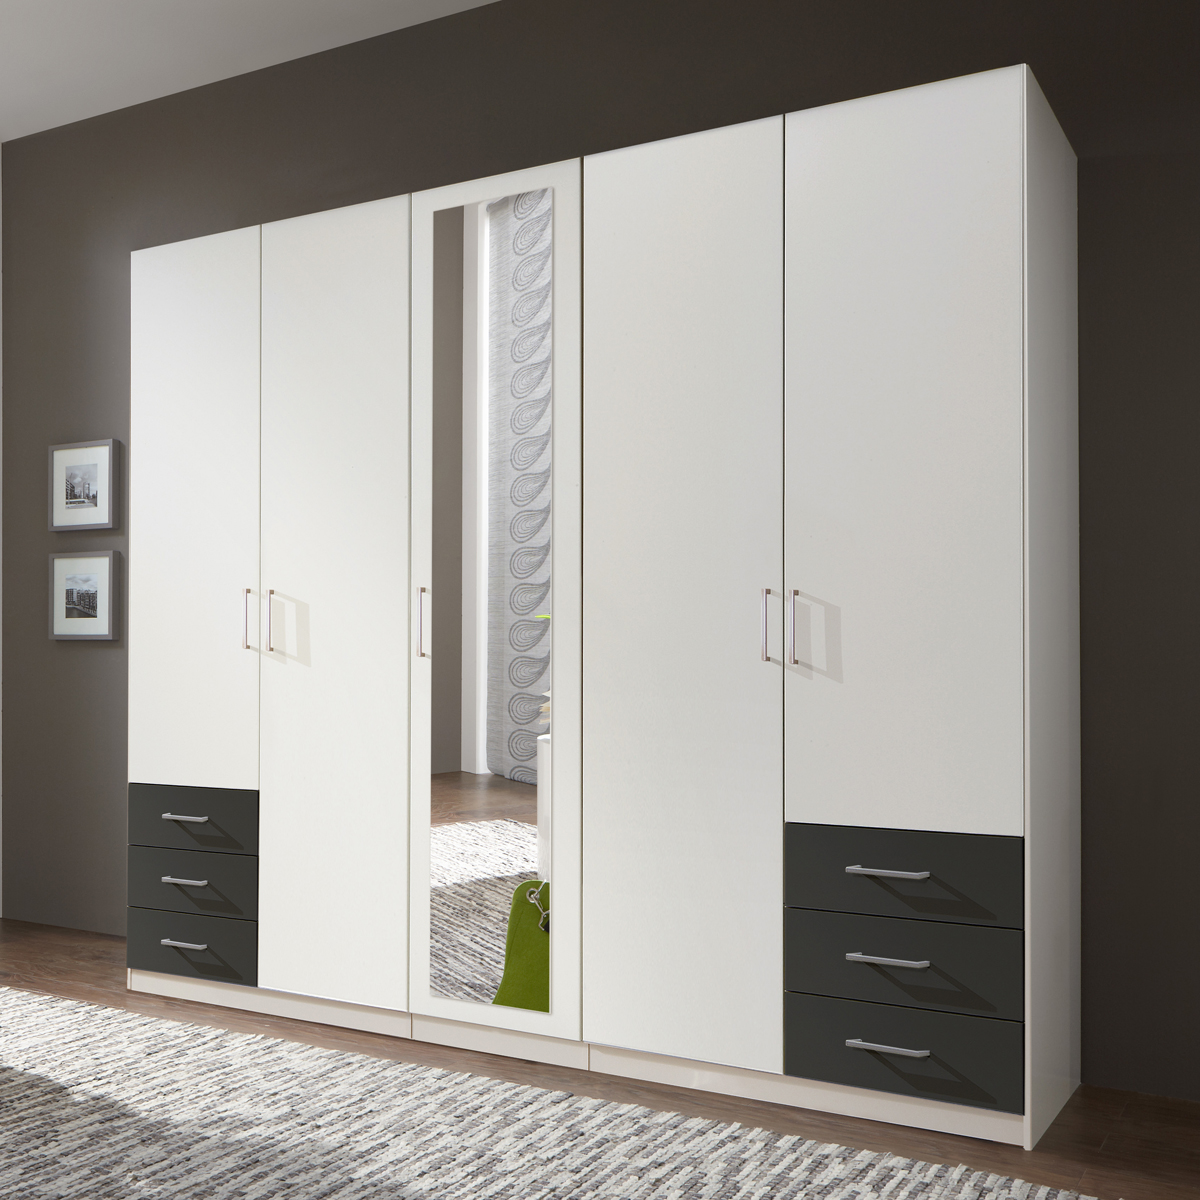 kleiderschrank f gen dreht renschrank alpinwei anthrazit schrank mit spiegel ebay. Black Bedroom Furniture Sets. Home Design Ideas